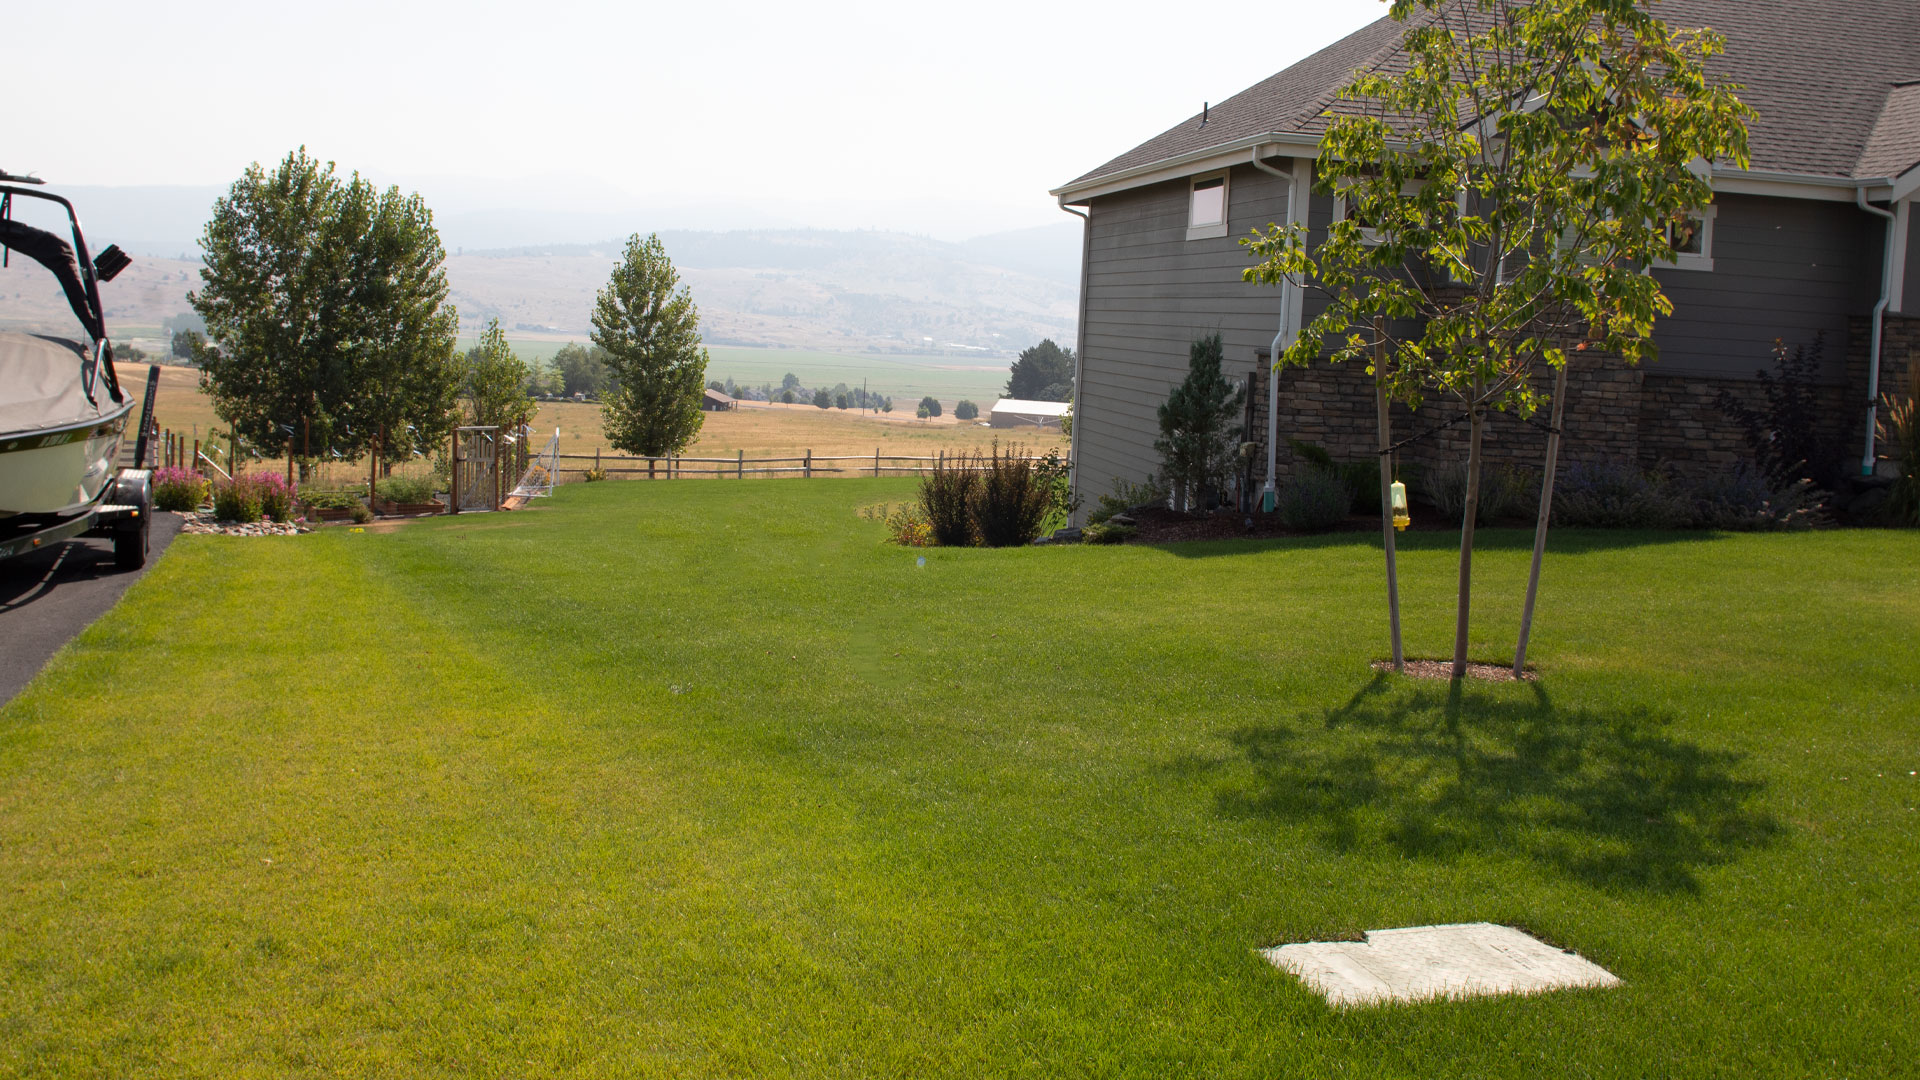 A Sure Green Lawn & Tree Service, Inc. clients lawn after regular lawn treatments.